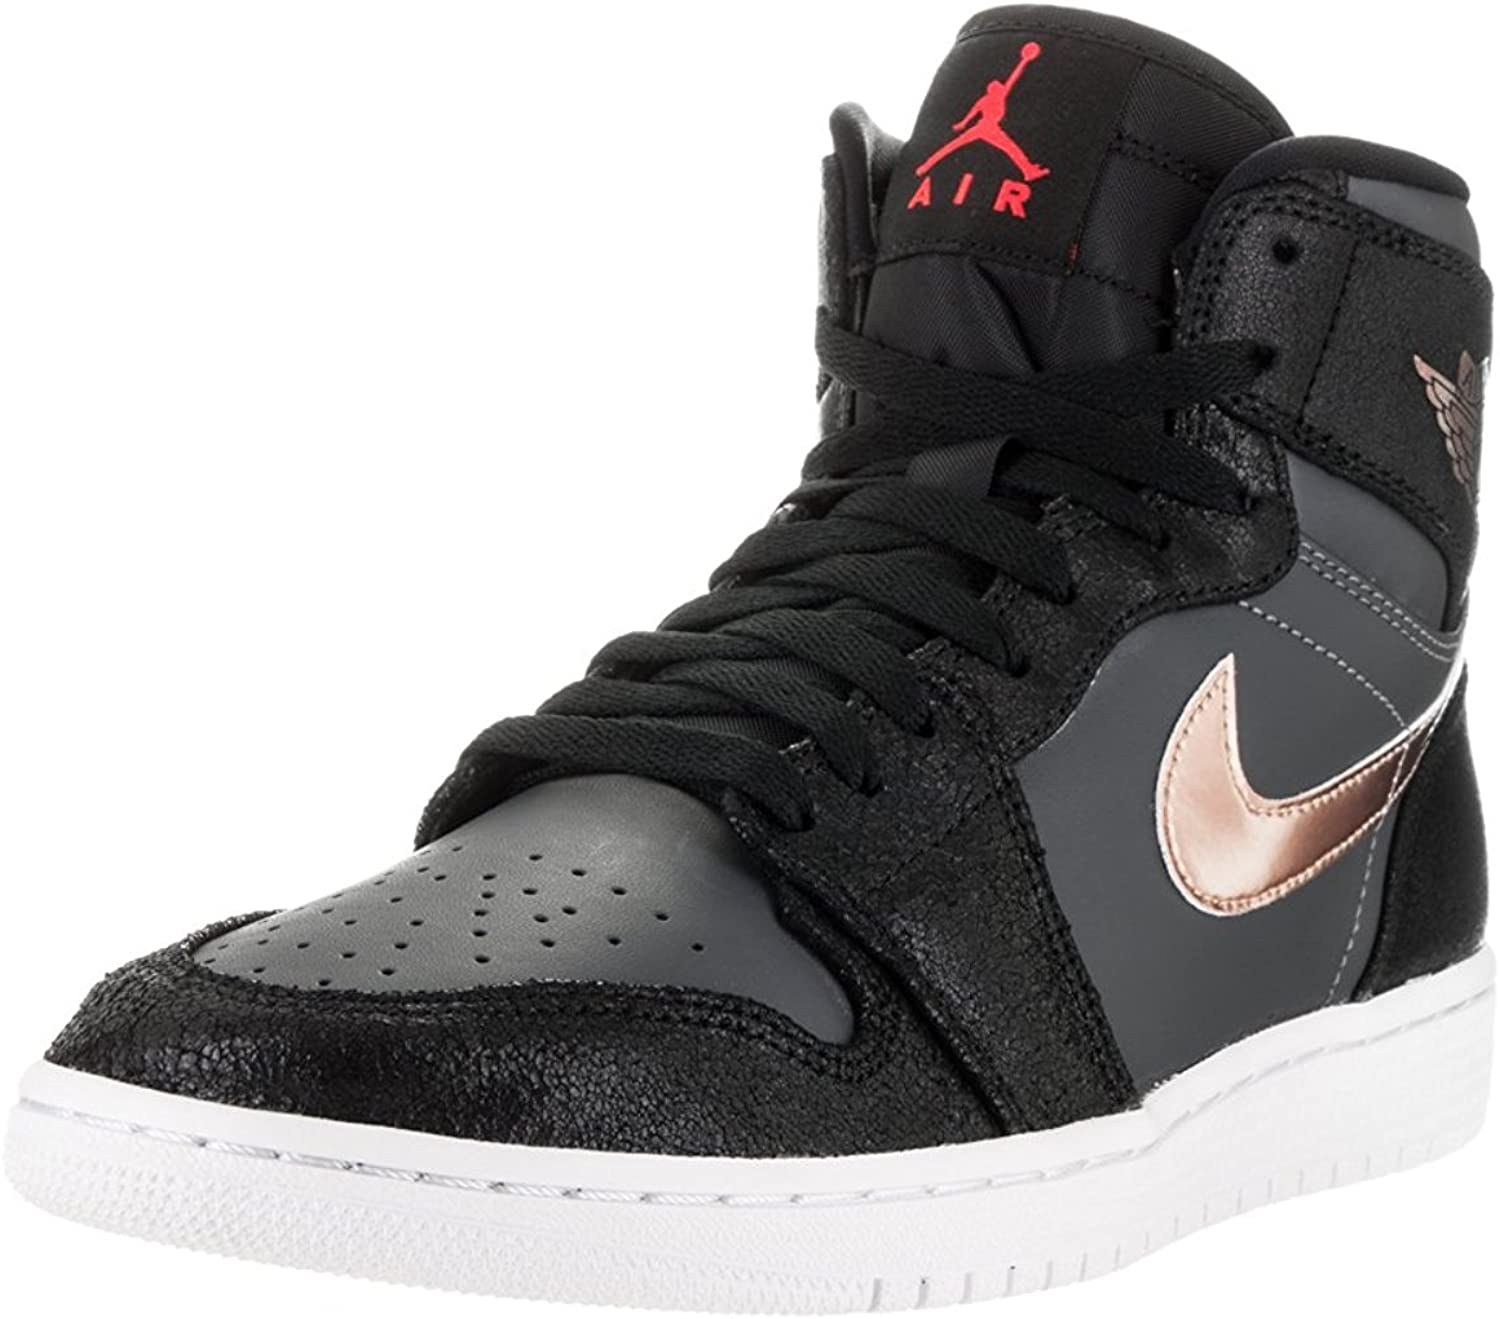 Noreste profundizar transportar  Nike Air Jordan 1 Retro High Broze Medal LTD Sneaker Current collection 2016  black/dark gray/bronze/white, EU Shoe Size:EUR 47.5, Color:black,  Basketball - Amazon Canada